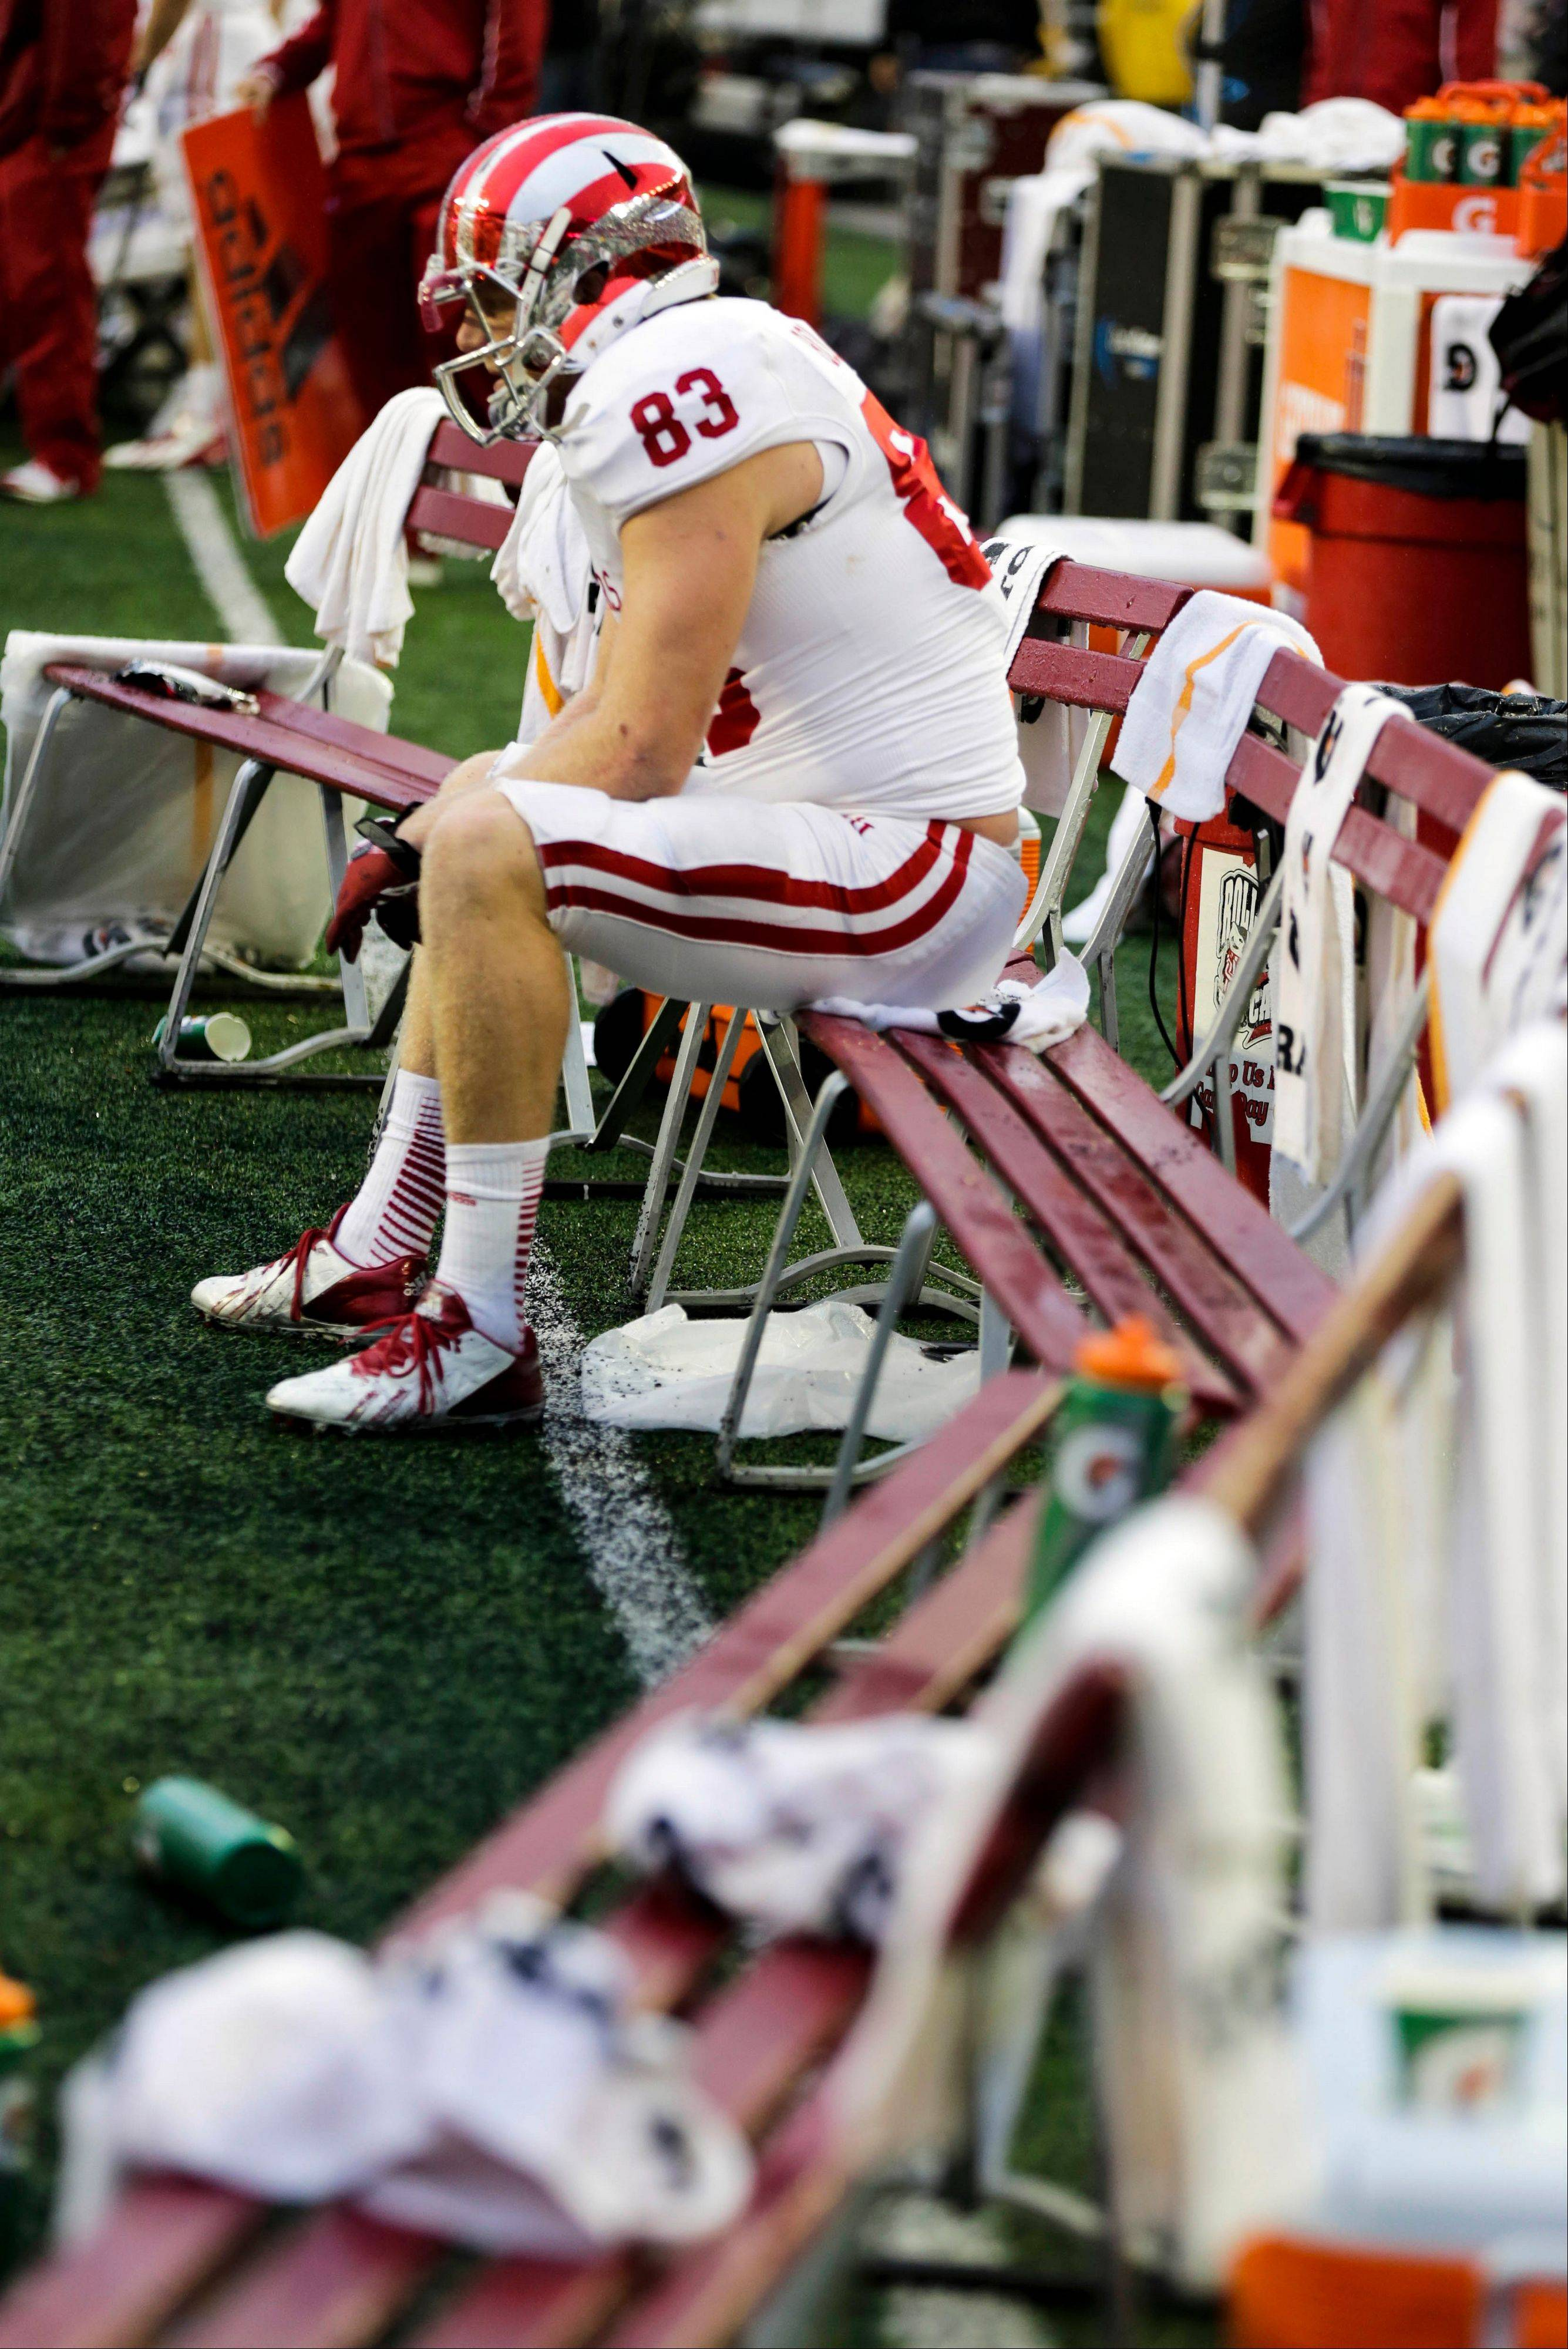 Indiana's Ted Bolser sits on the bench during the second half of a 51-3 loss to Wisconsin last Saturday in Madison, Wis.